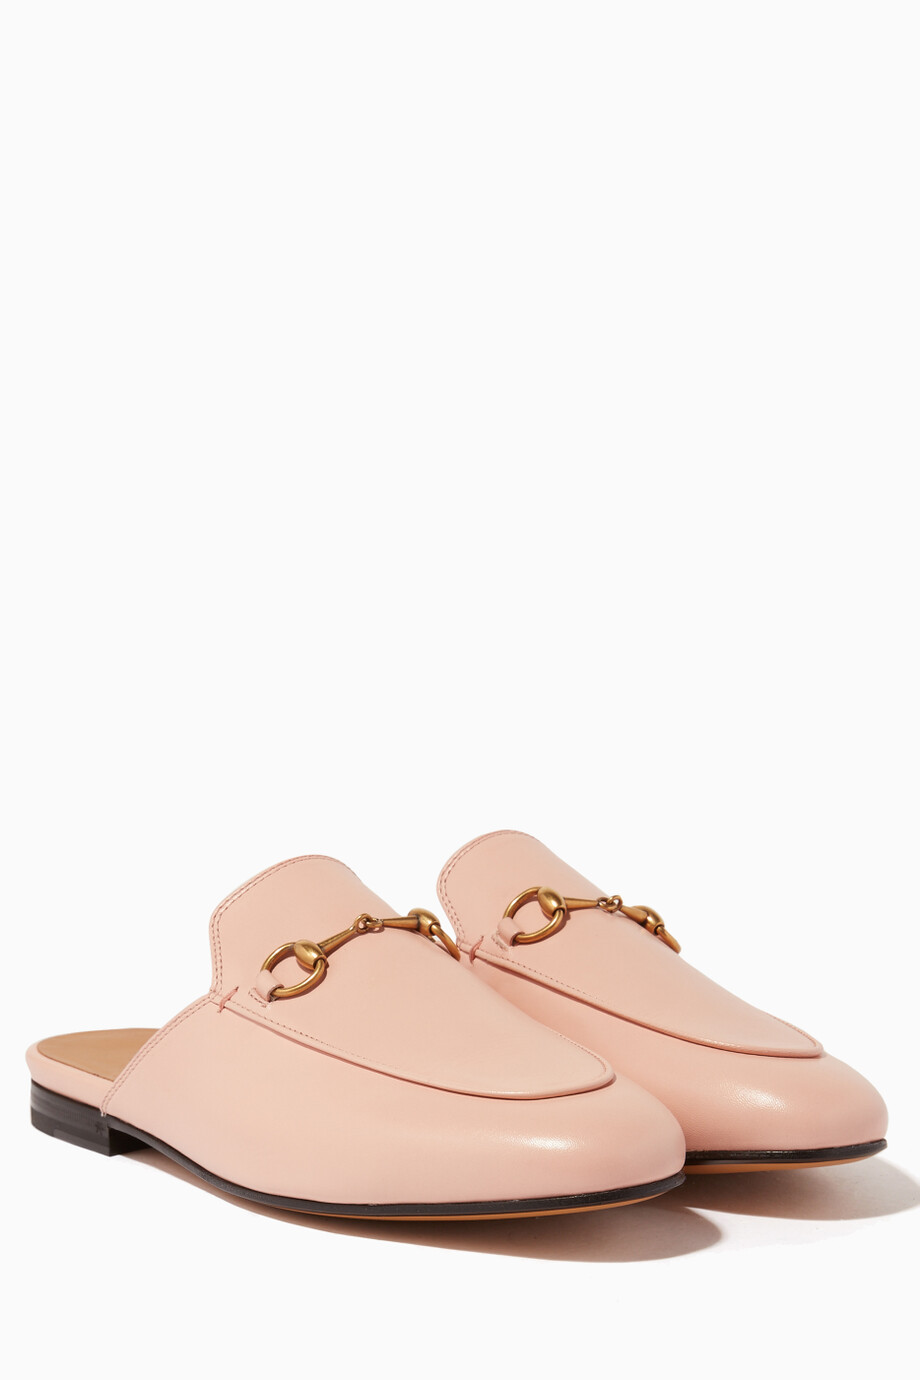 f5502fd944b Shop Gucci Pink Light-Pink Leather Princetown Loafer for Women ...